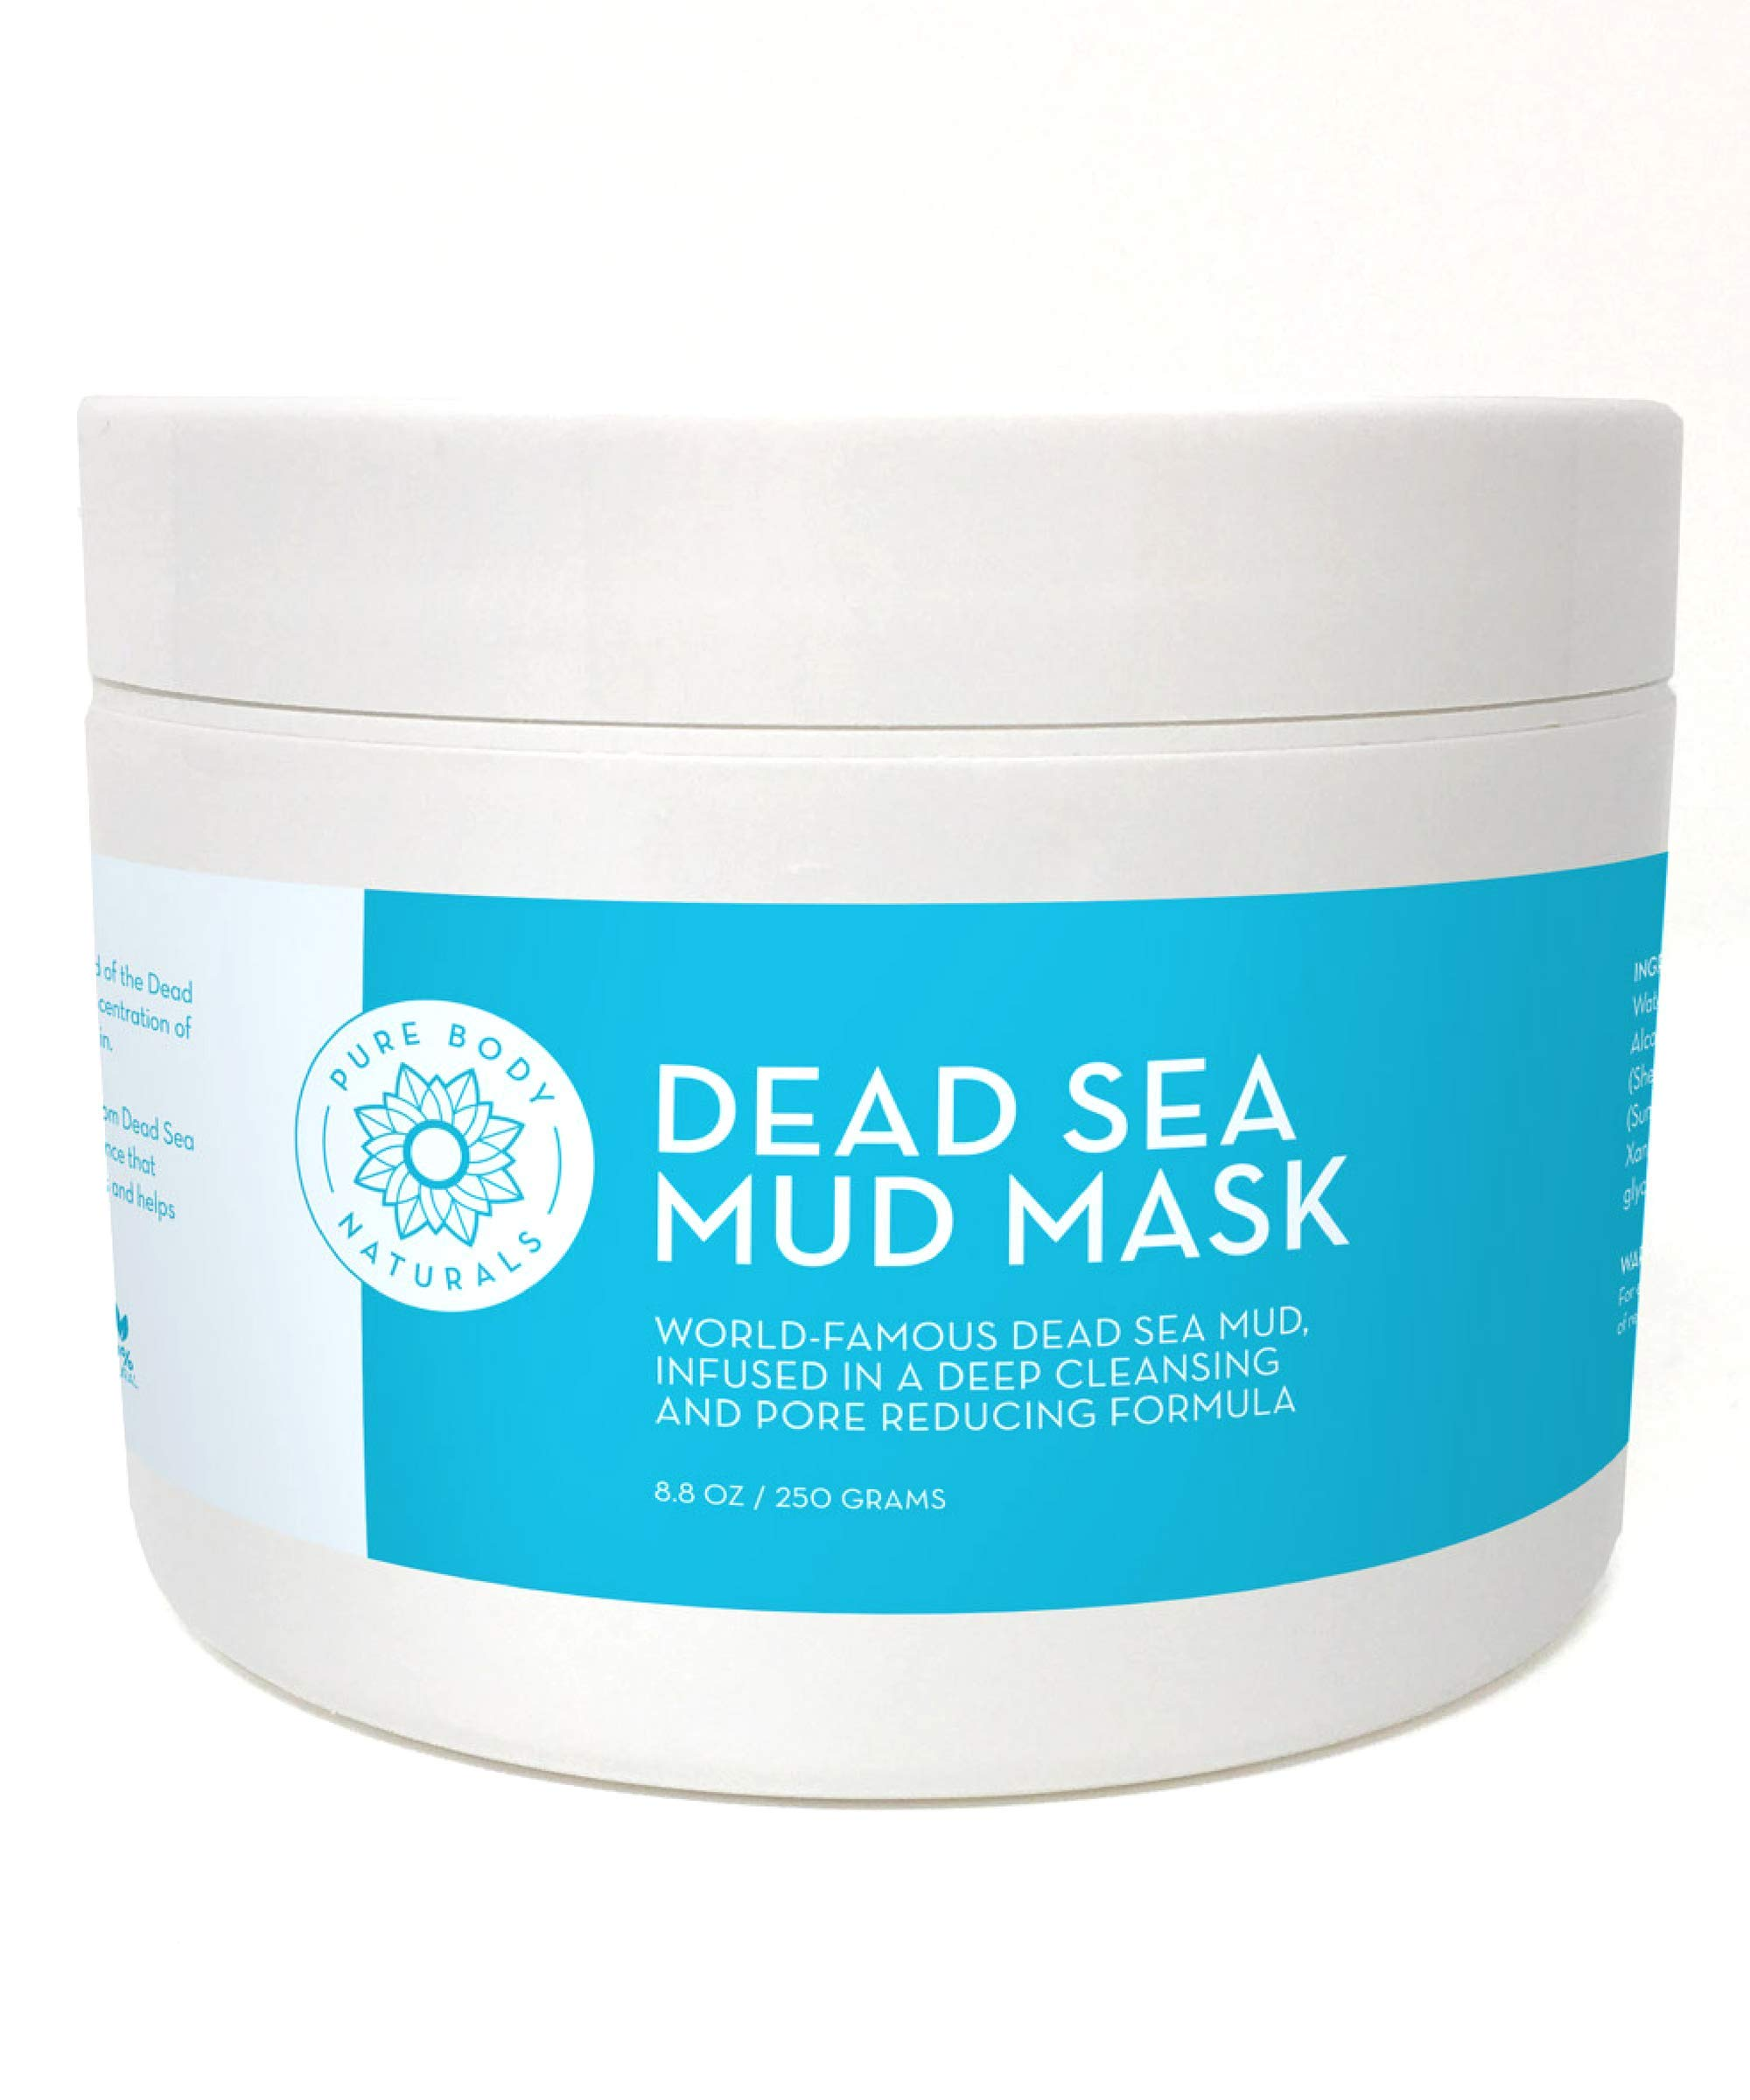 Dead Sea Mud Mask for Face and Body, Purifying Face Mask for Acne, Blackheads, and Oily Skin by Pure Body Naturals (Premium, 8.8 Ounce)